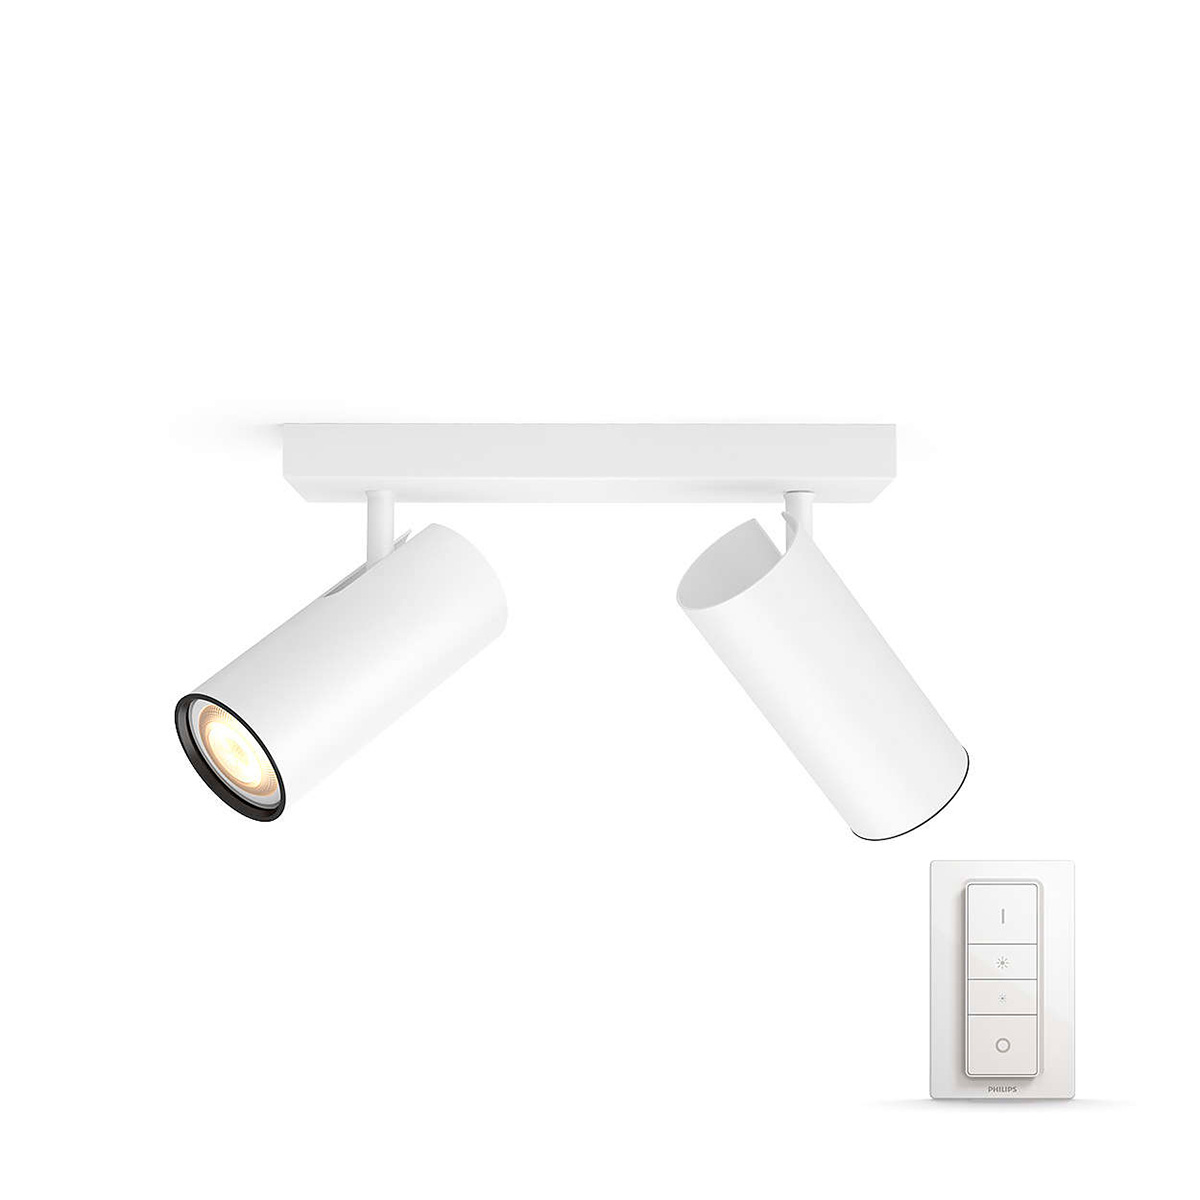 Image of   Philips Connected spot - White ambiance - Buratto - Hvid